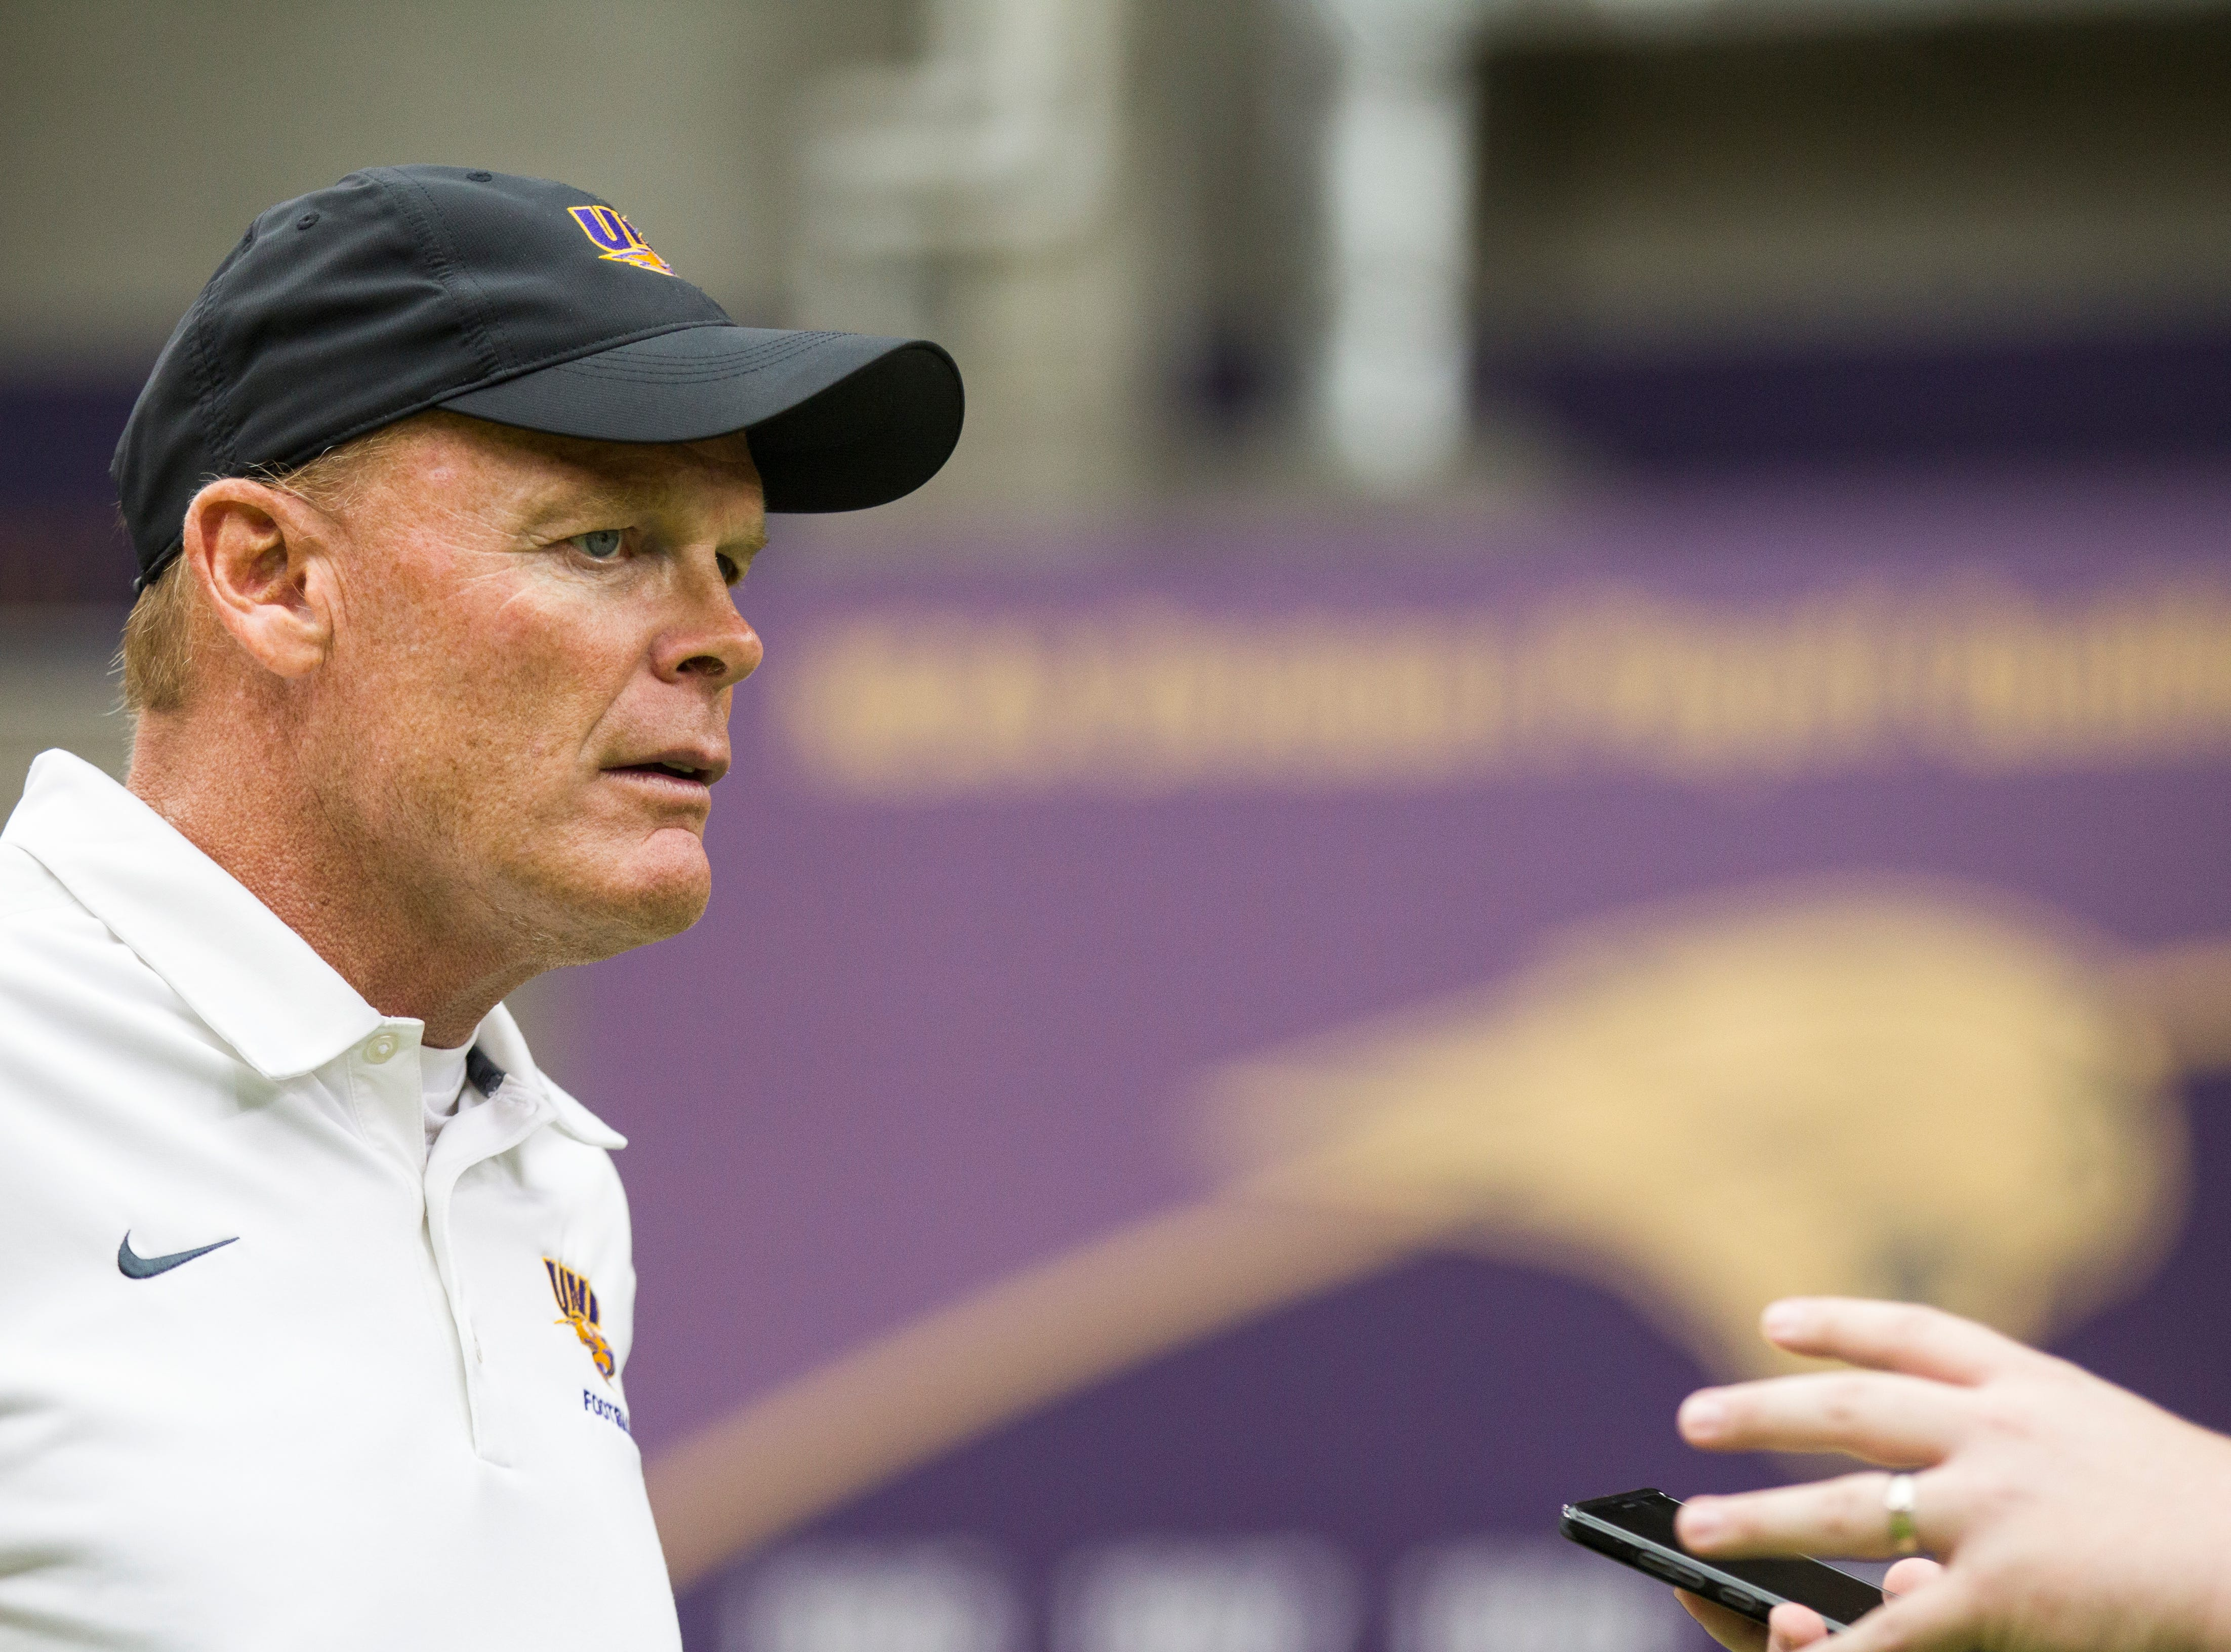 UNI head coach Mark Farley speaks with members of the media during media day on Wednesday, Aug. 8, 2018, at the UNI-Dome in Cedar Falls, Iowa.